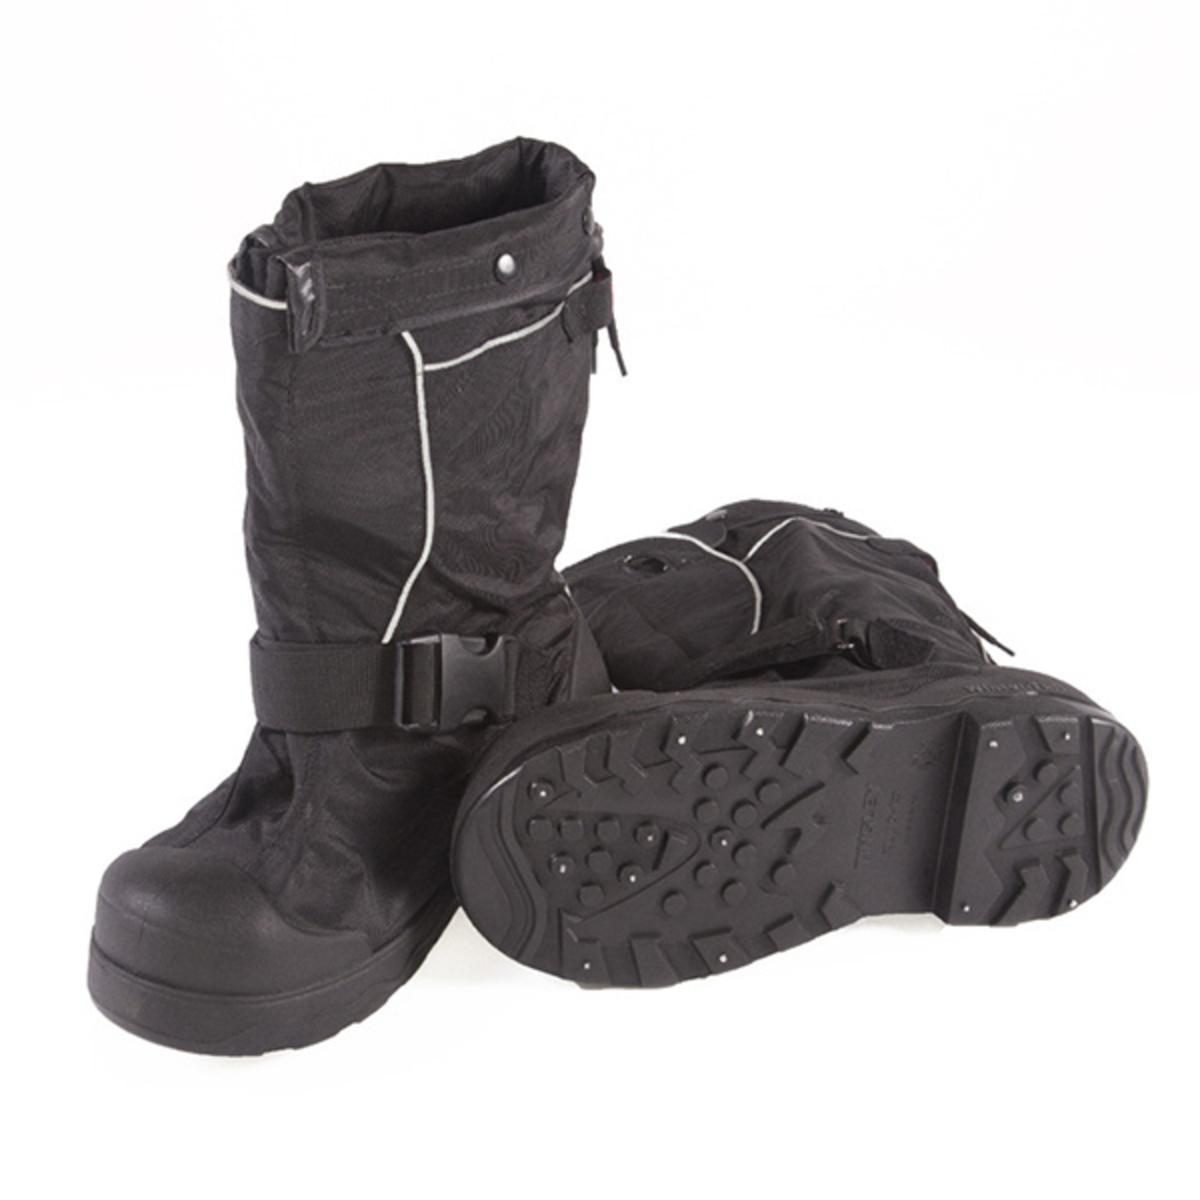 differently 9a54e cbe1e Tingley Winter-Tuff Orion XT Traction Overshoe